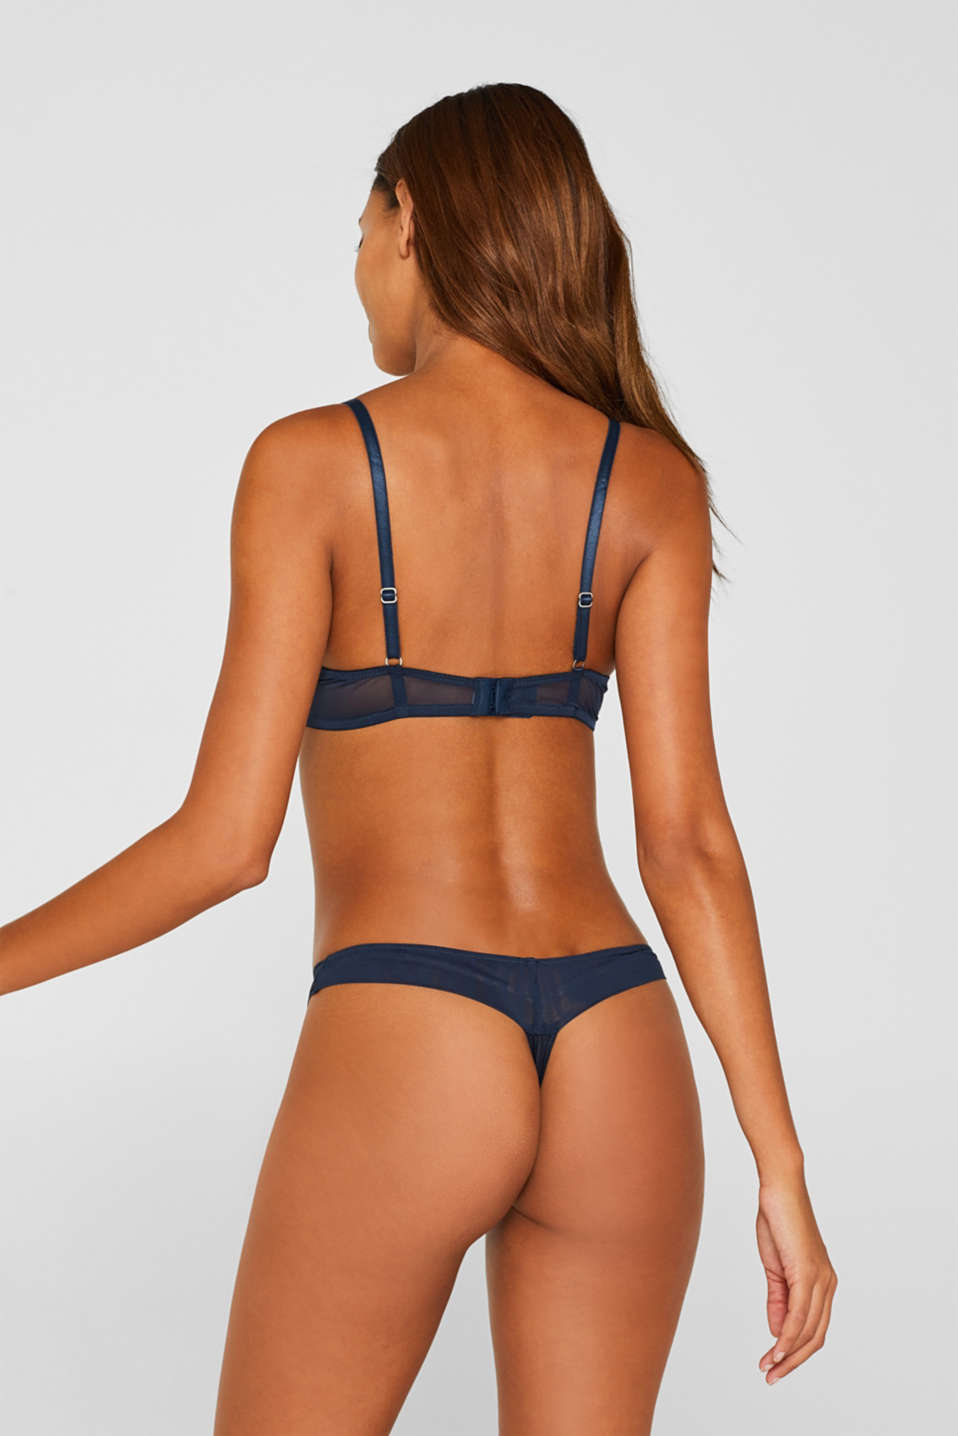 Push-up bra with stripes, NAVY, detail image number 1